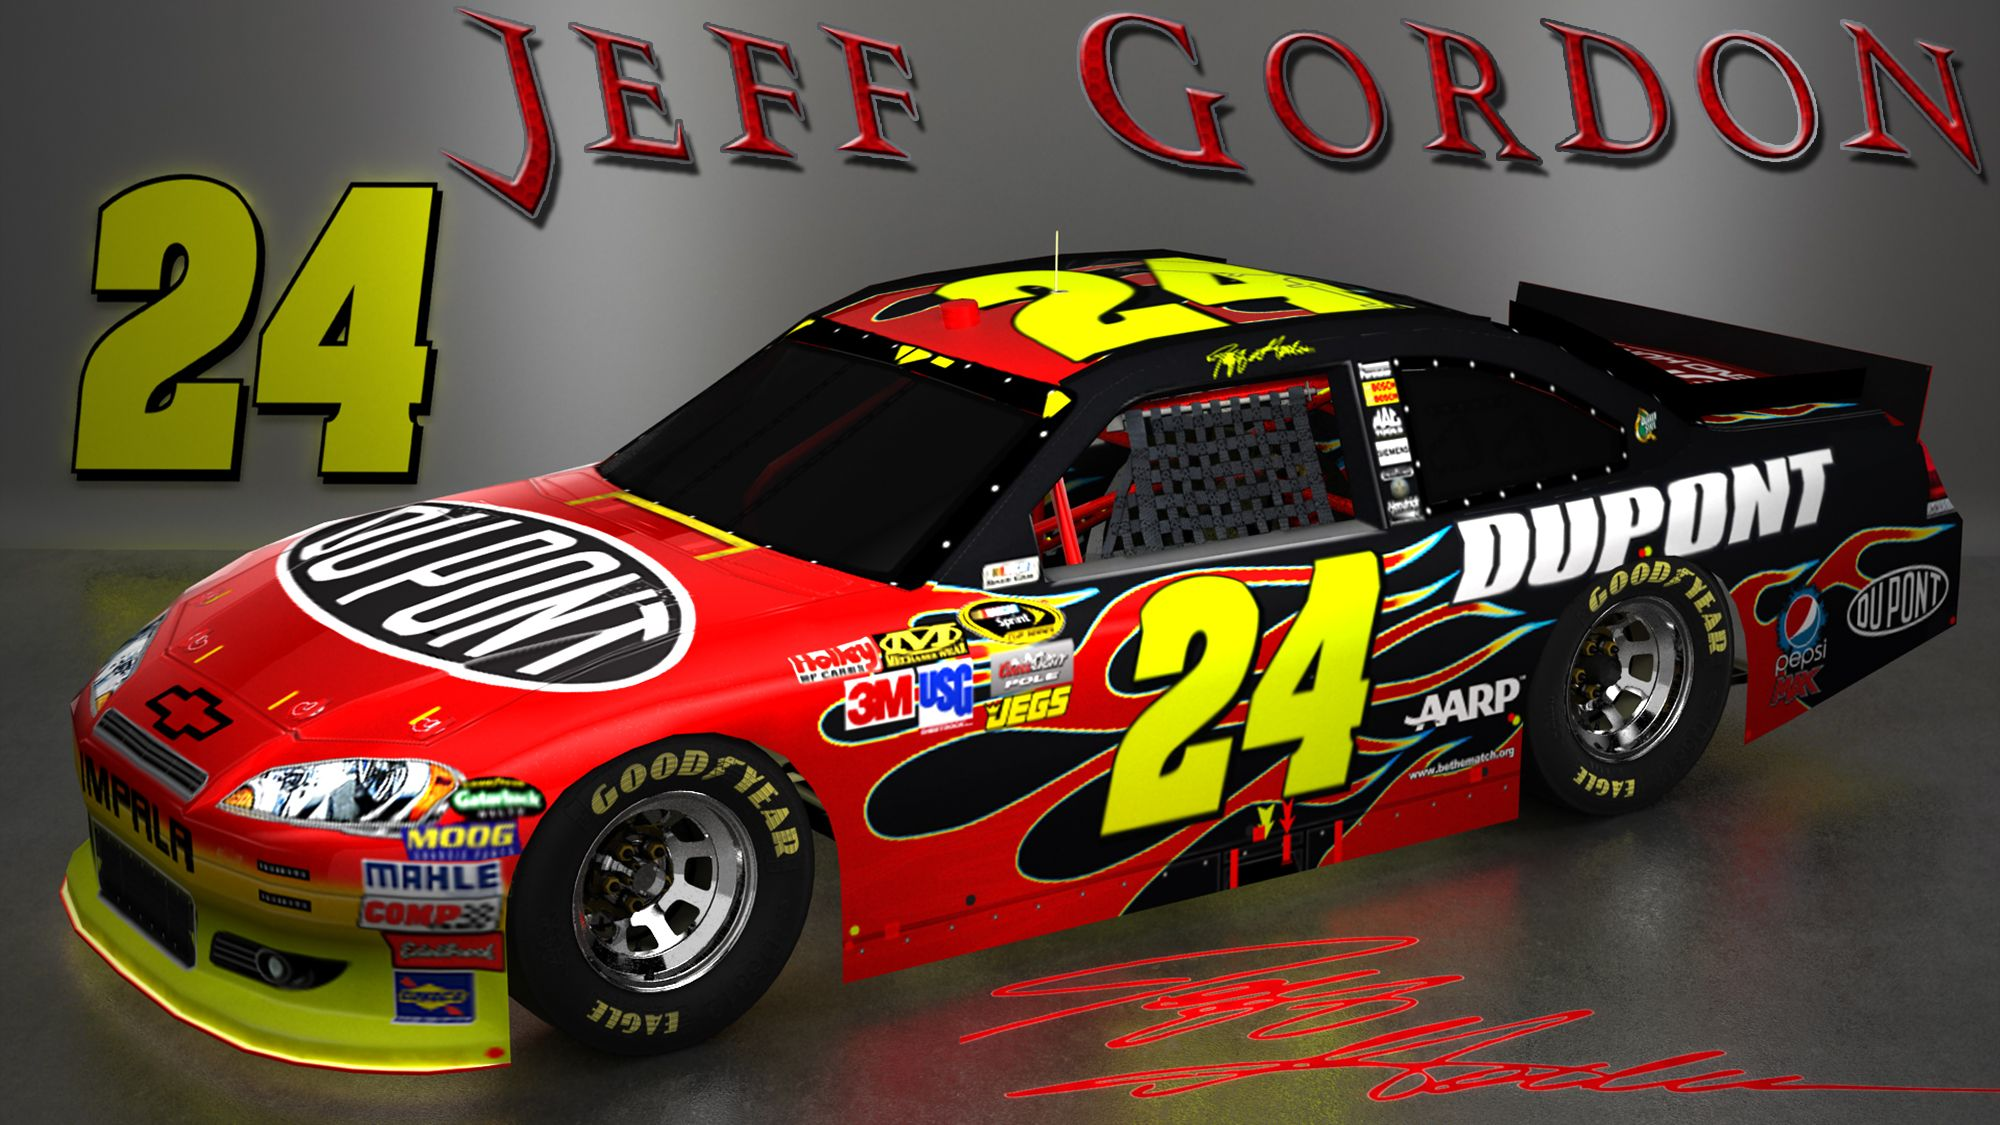 Jeff Gordon Nascar Images Jeff Gordon Nascar Signature Wallpaper Nascar Car Wallpapers Nascar Racing